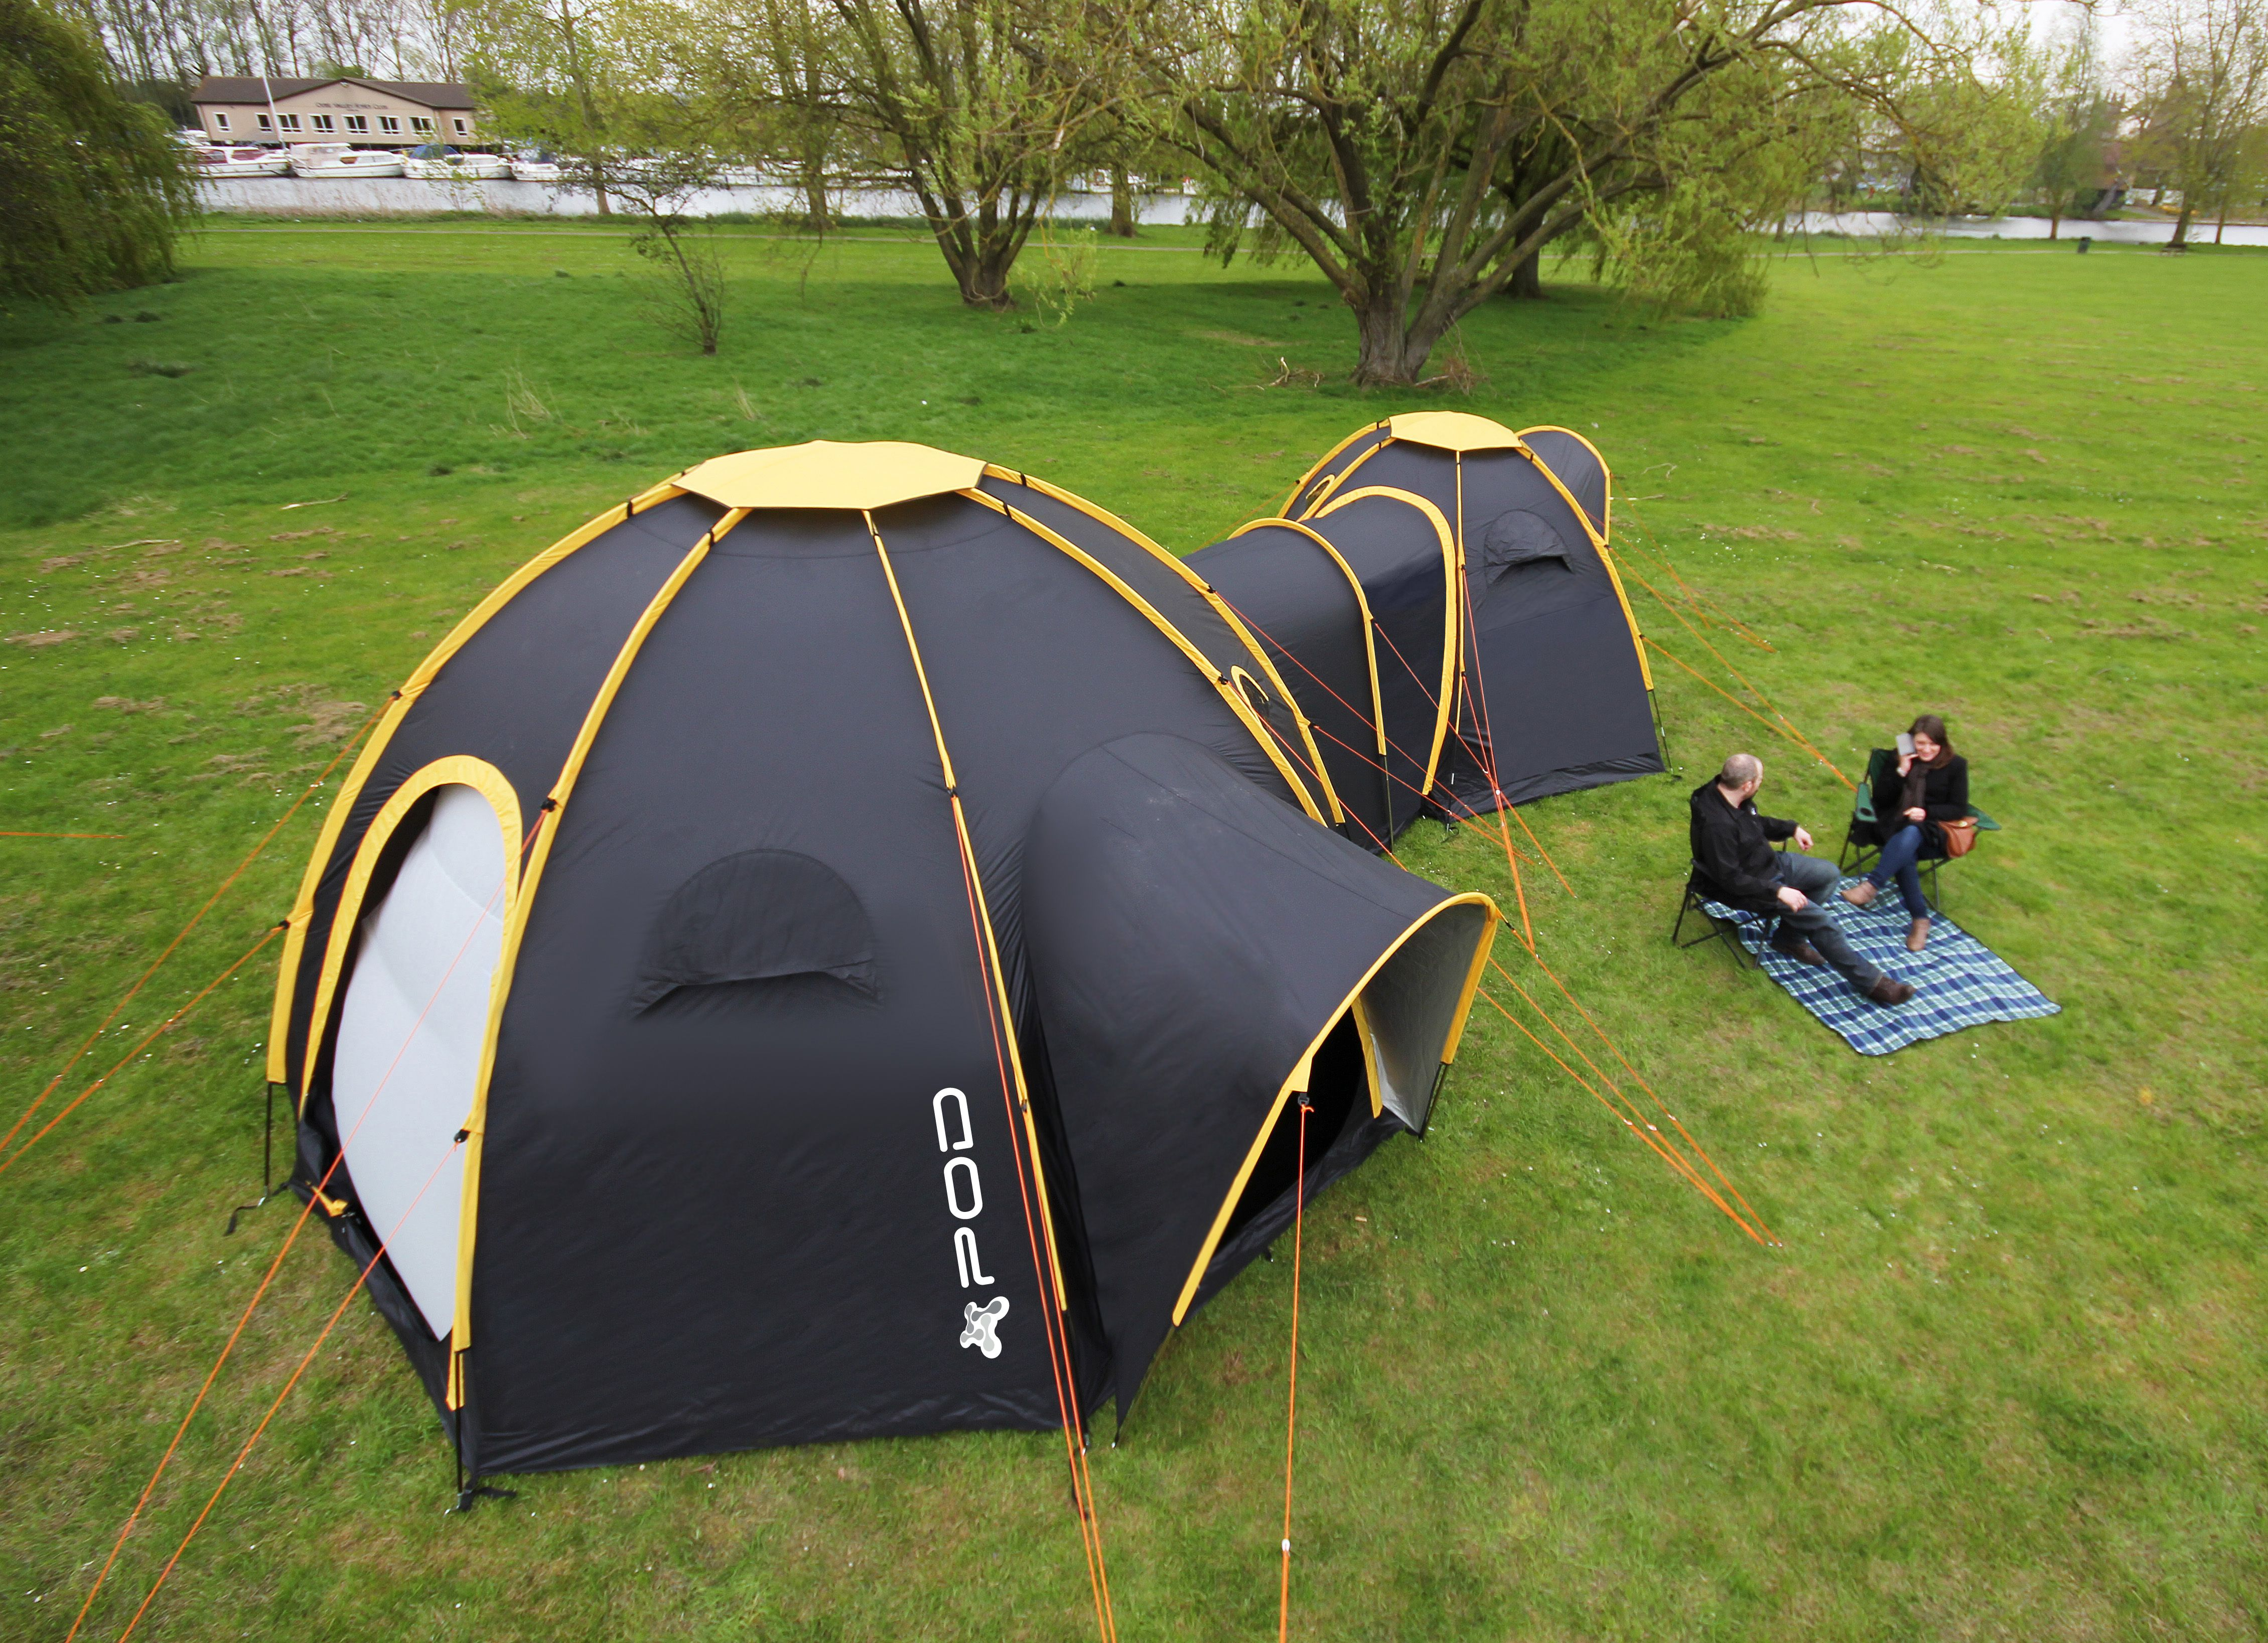 nice connecting huge tents by PODtents & nice connecting huge tents by PODtents   Travelling tools and tips ...